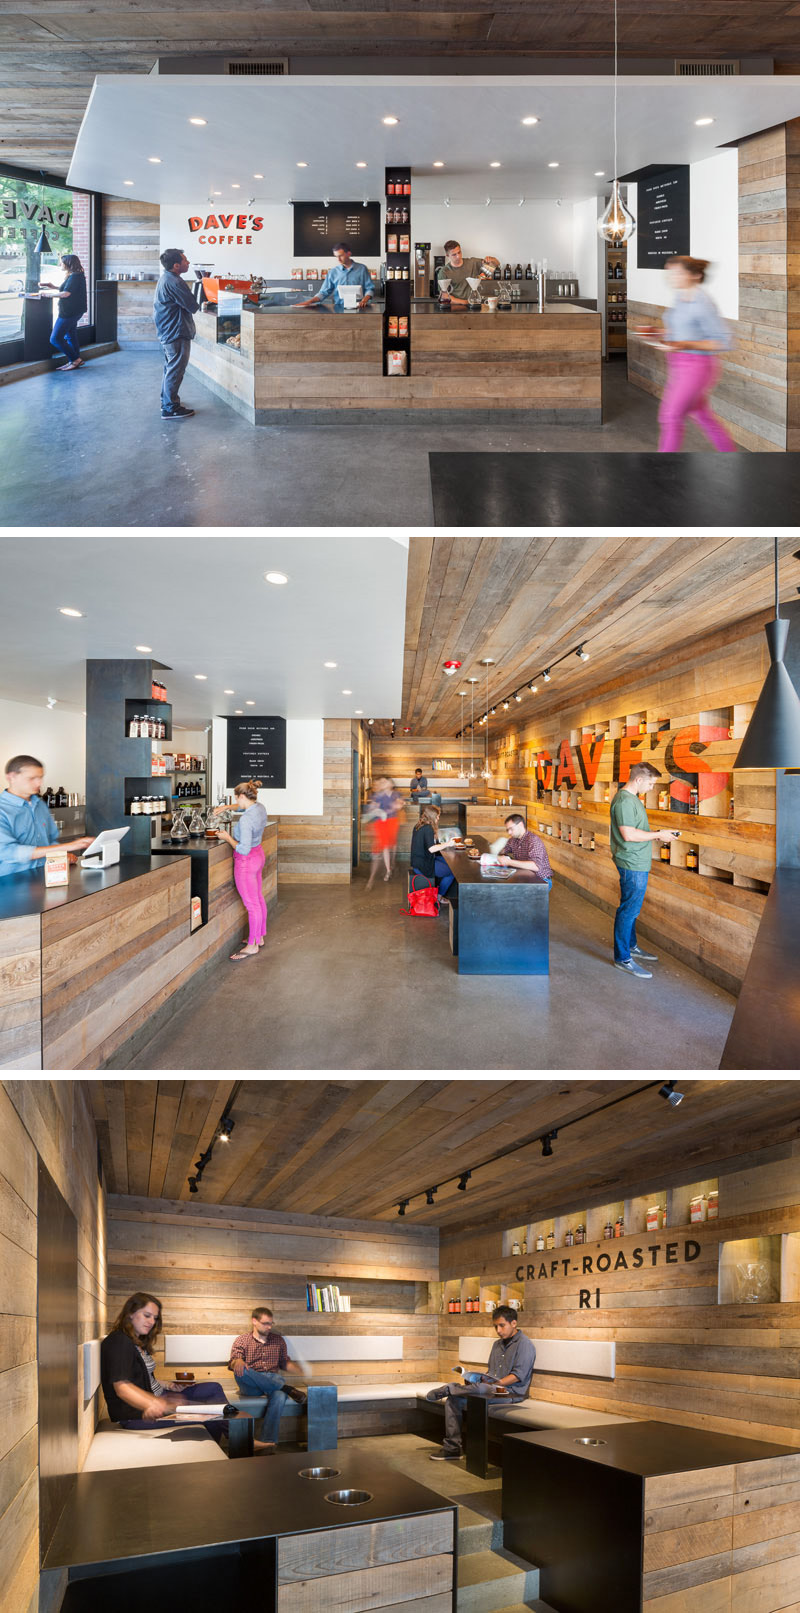 3six0 Architecture designed Dave's Coffee, a modern espresso bar and coffee shop that features aged cedar boards on the walls and ceilings.